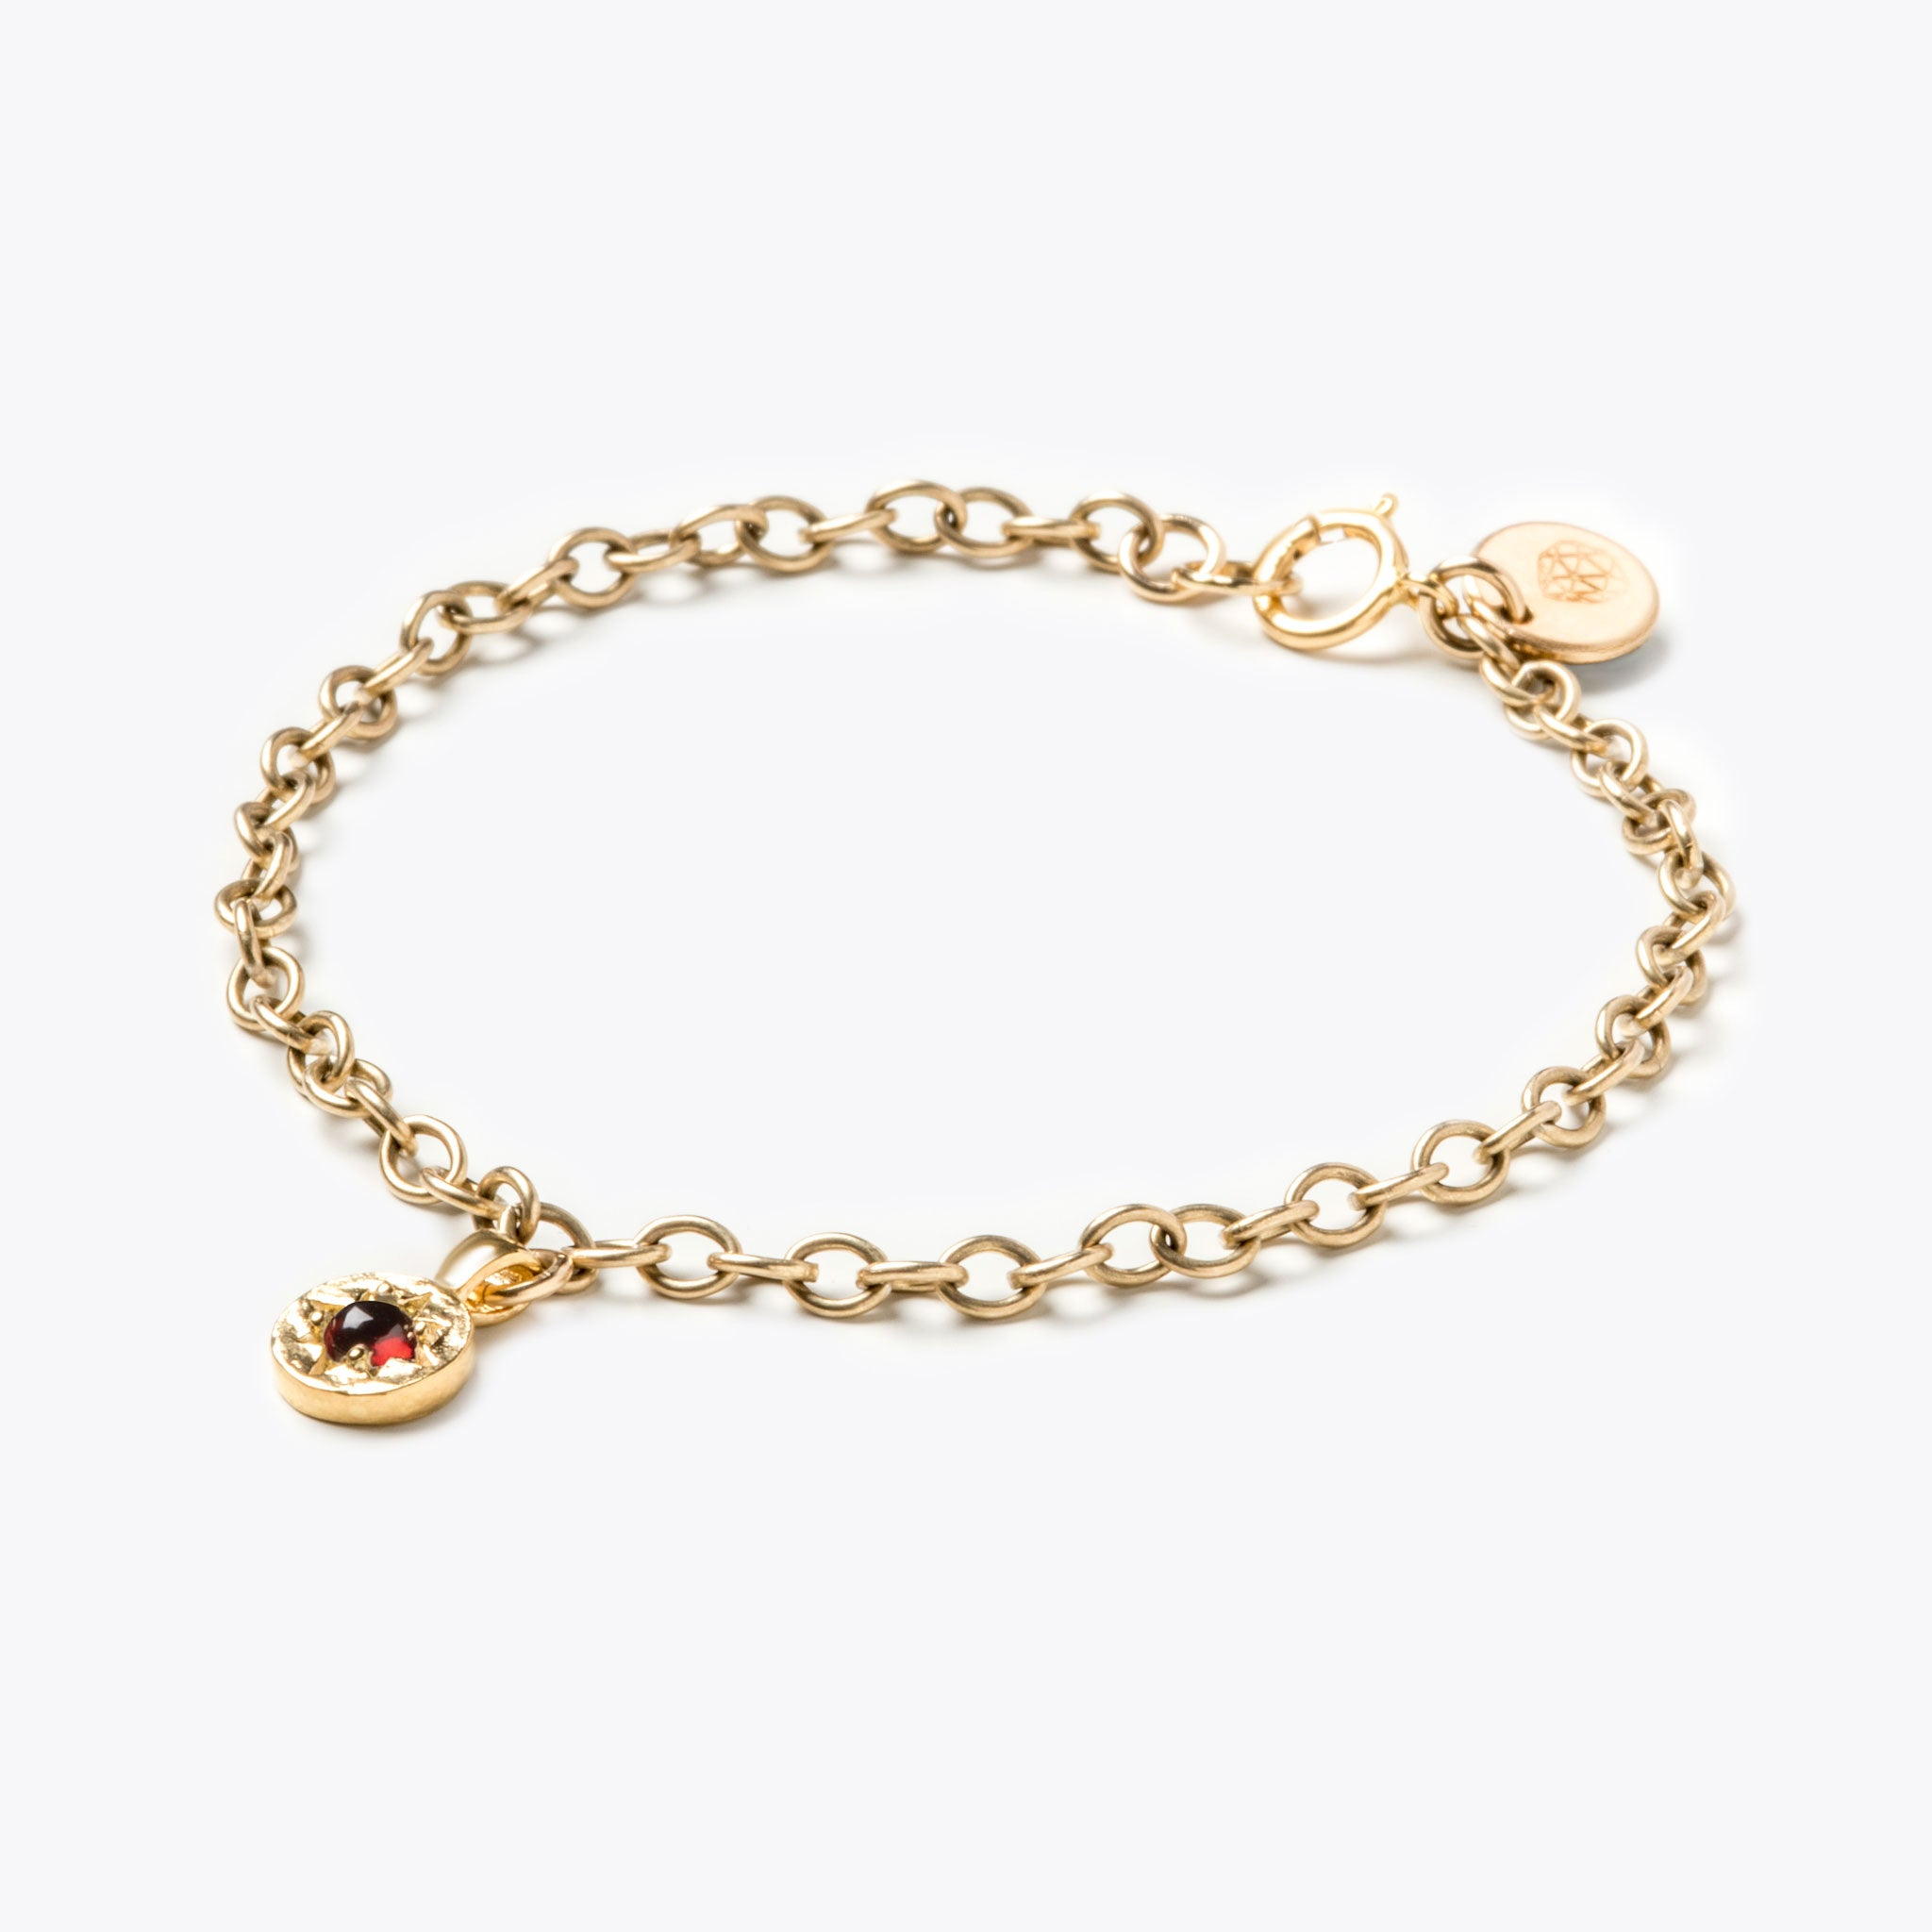 Wanderlust Life January birthstone 14k gold fill charm bracelet featuring semi precious garnet gemstone symbolising the month of January. January birthstone gold bracelet available in small & medium adjustable gold chain. Wanderlust Life handmade jewellery made in Devon, UK.